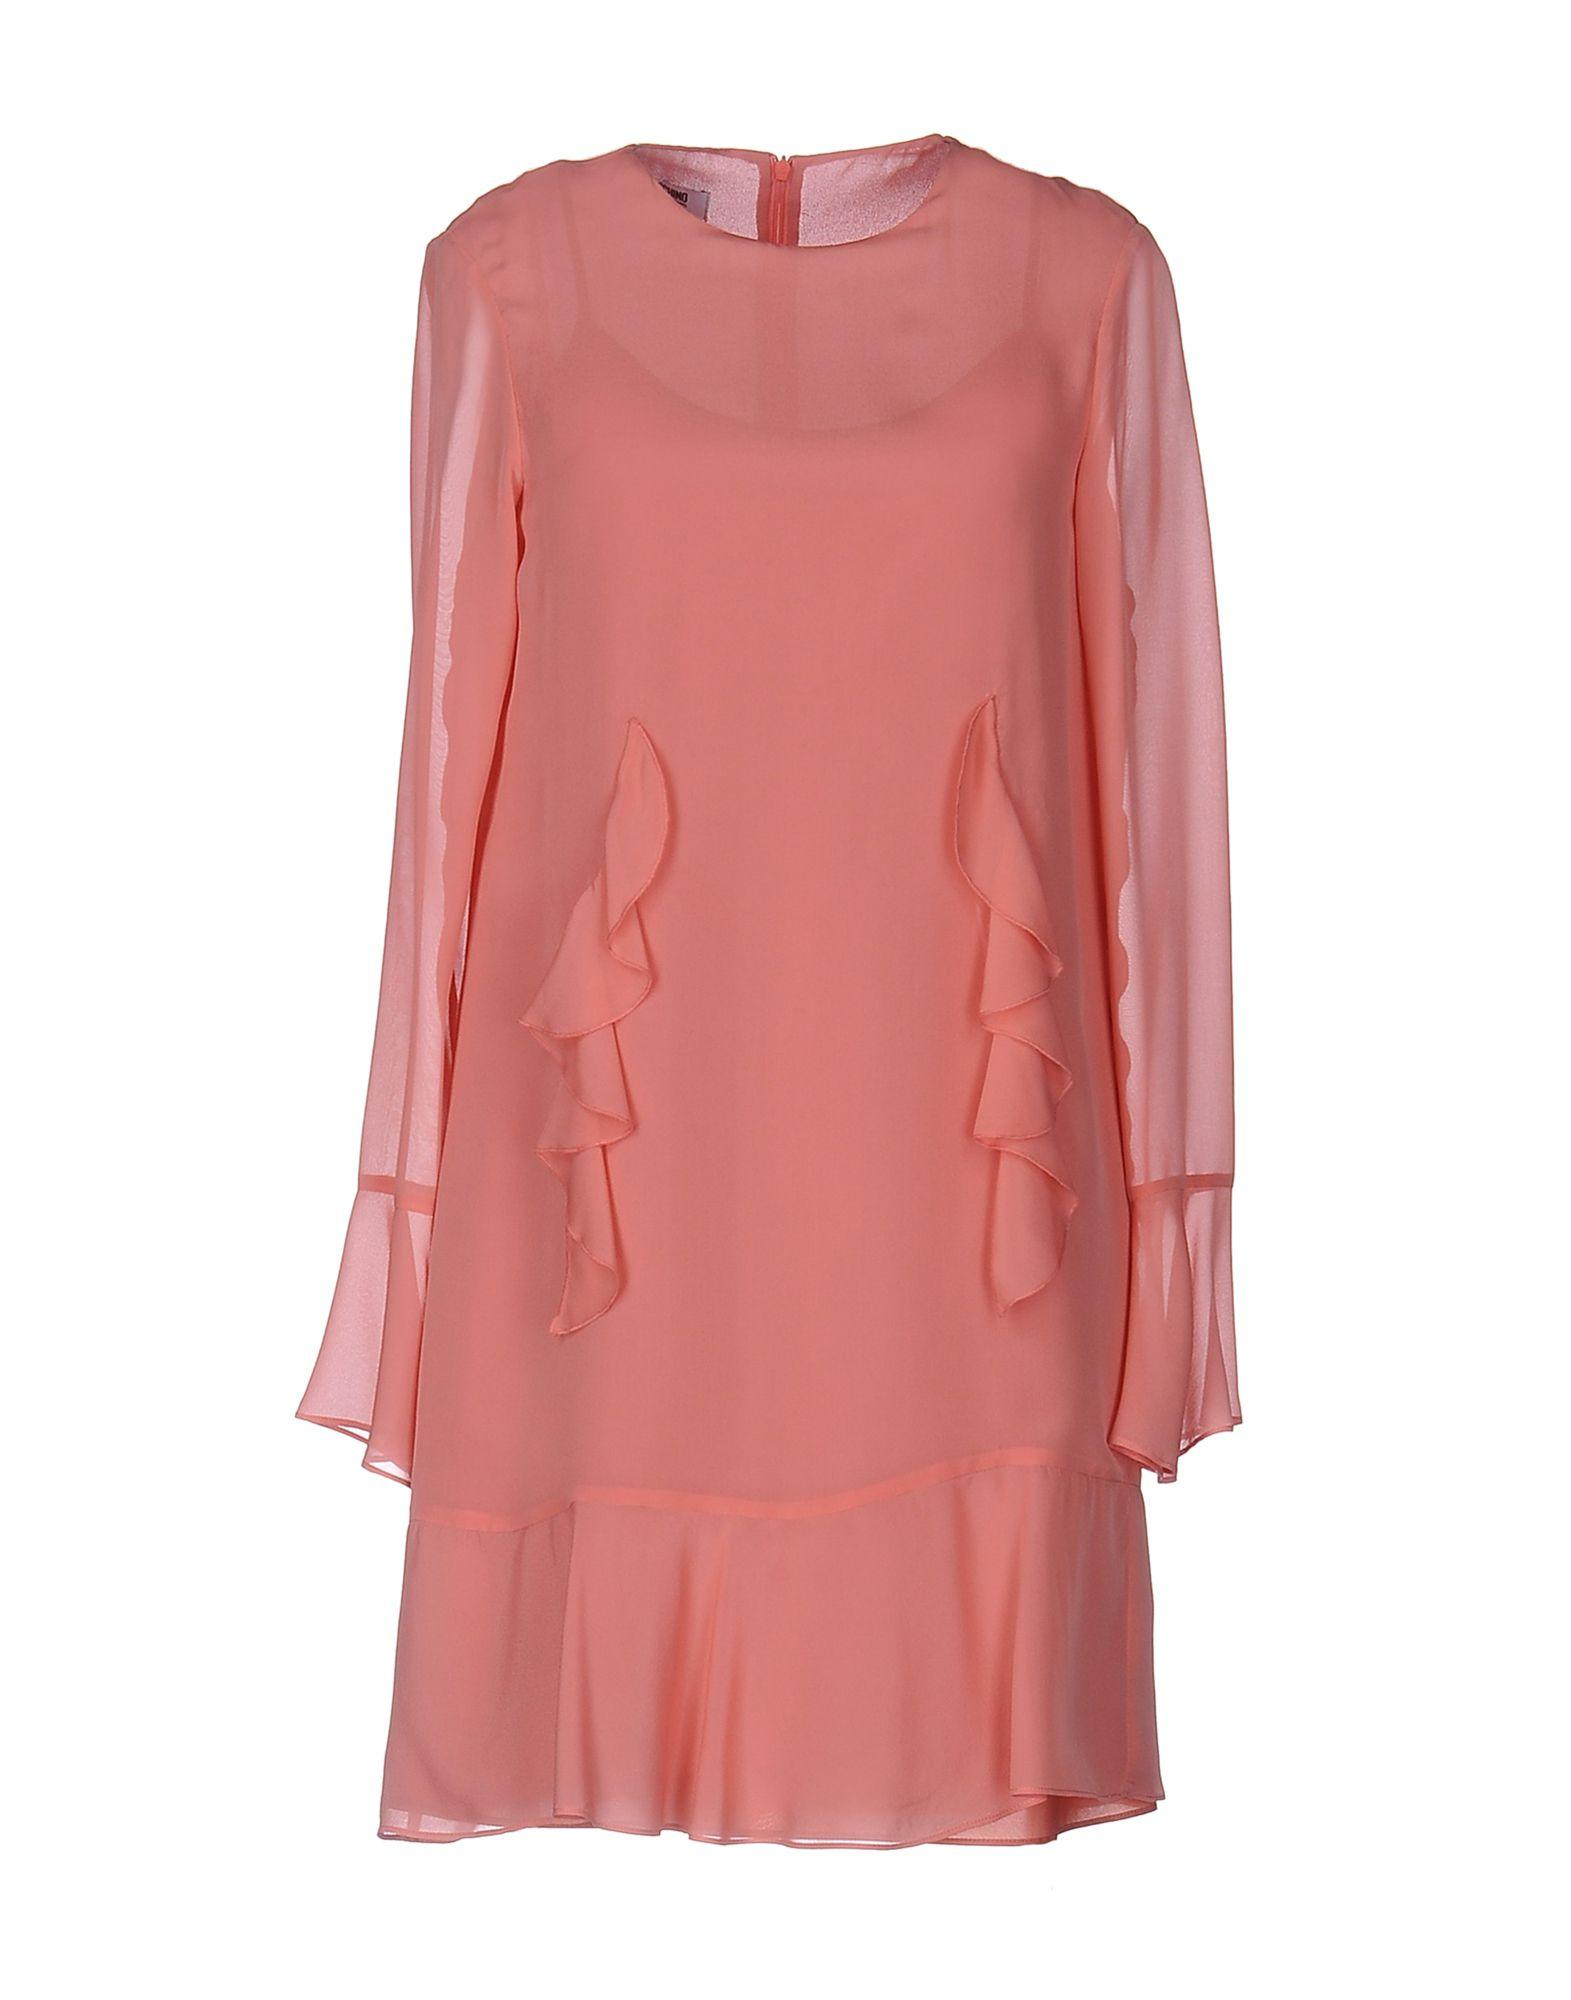 Moschino Cheap And Chic Short Dress In Pastel Pink